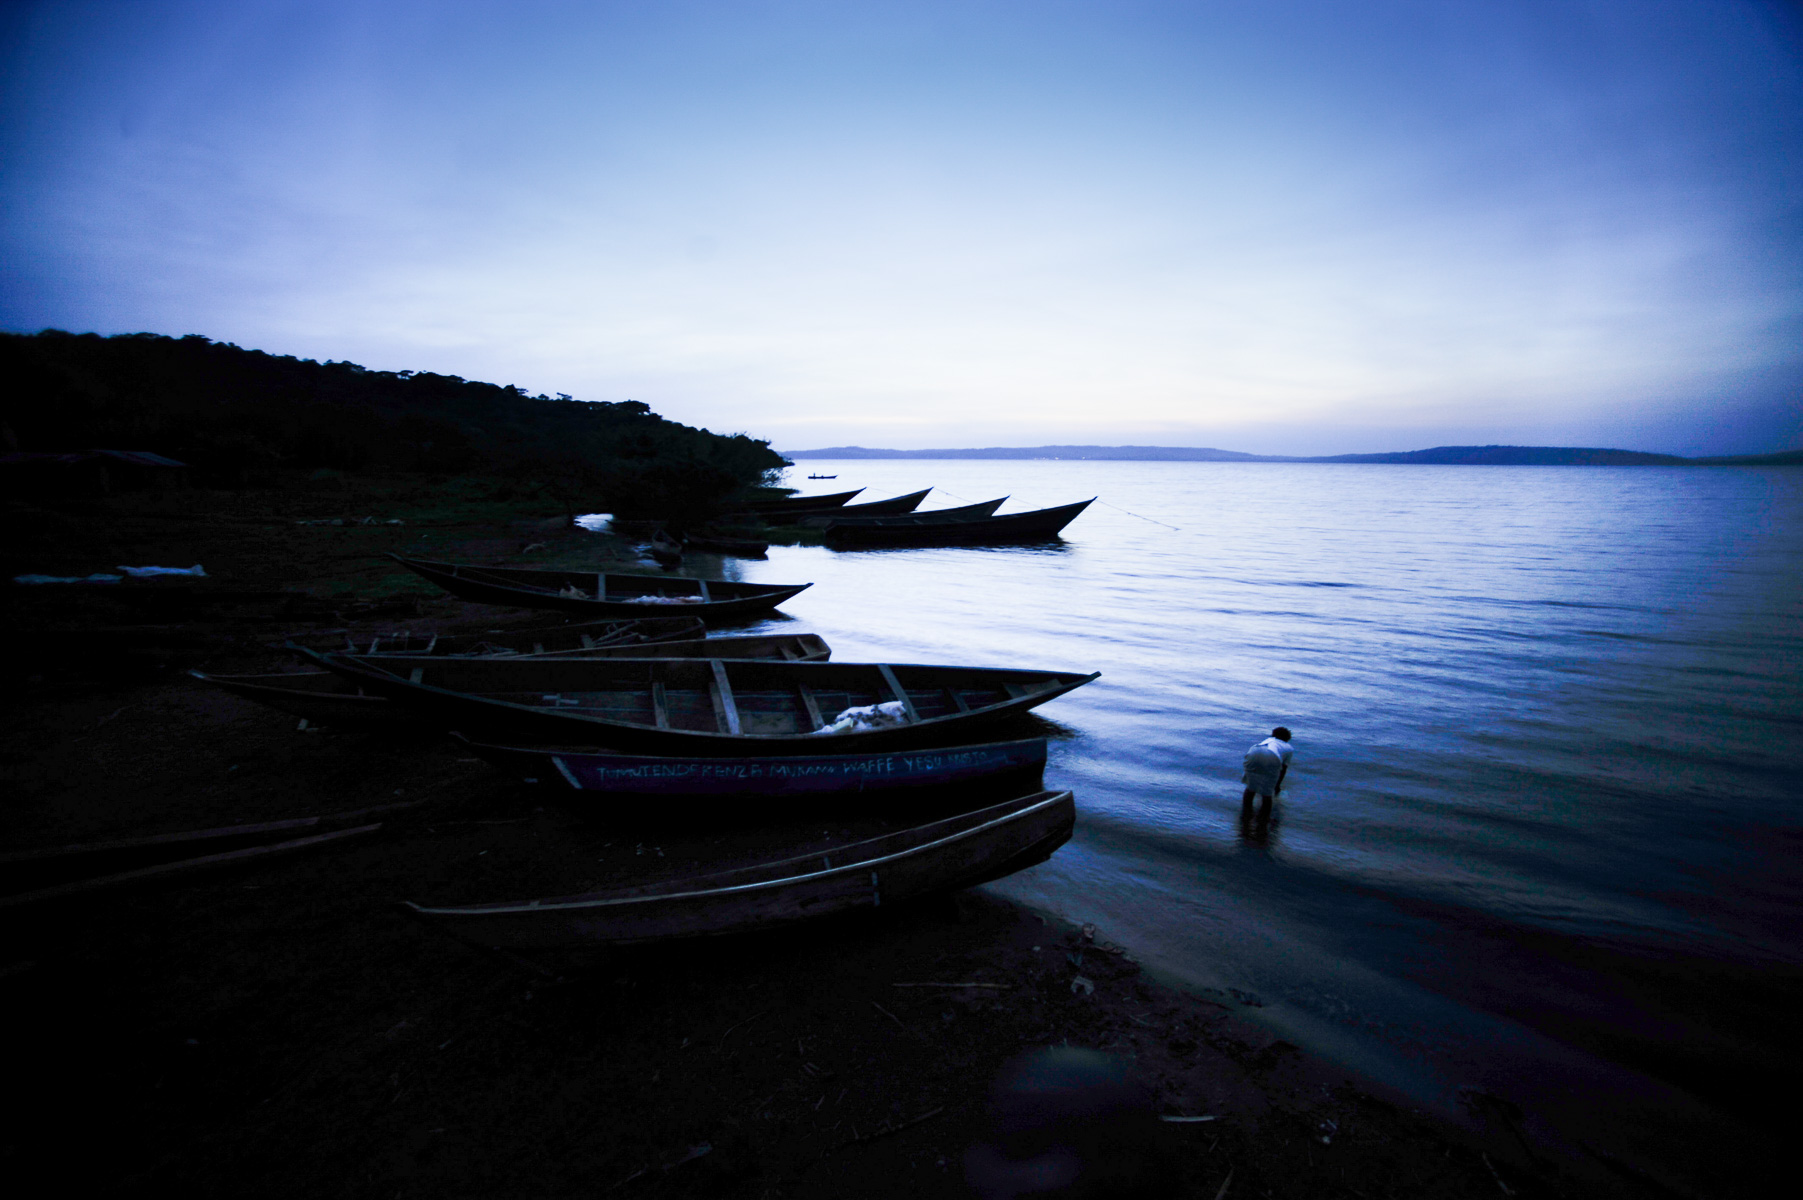 Lake Victoria in East Africa borders three countries and is one of the largest lakes in the world. Overfishing and climate change are rapidly threatening the health of the lake which millions of people depend on for survival. Tanzania.